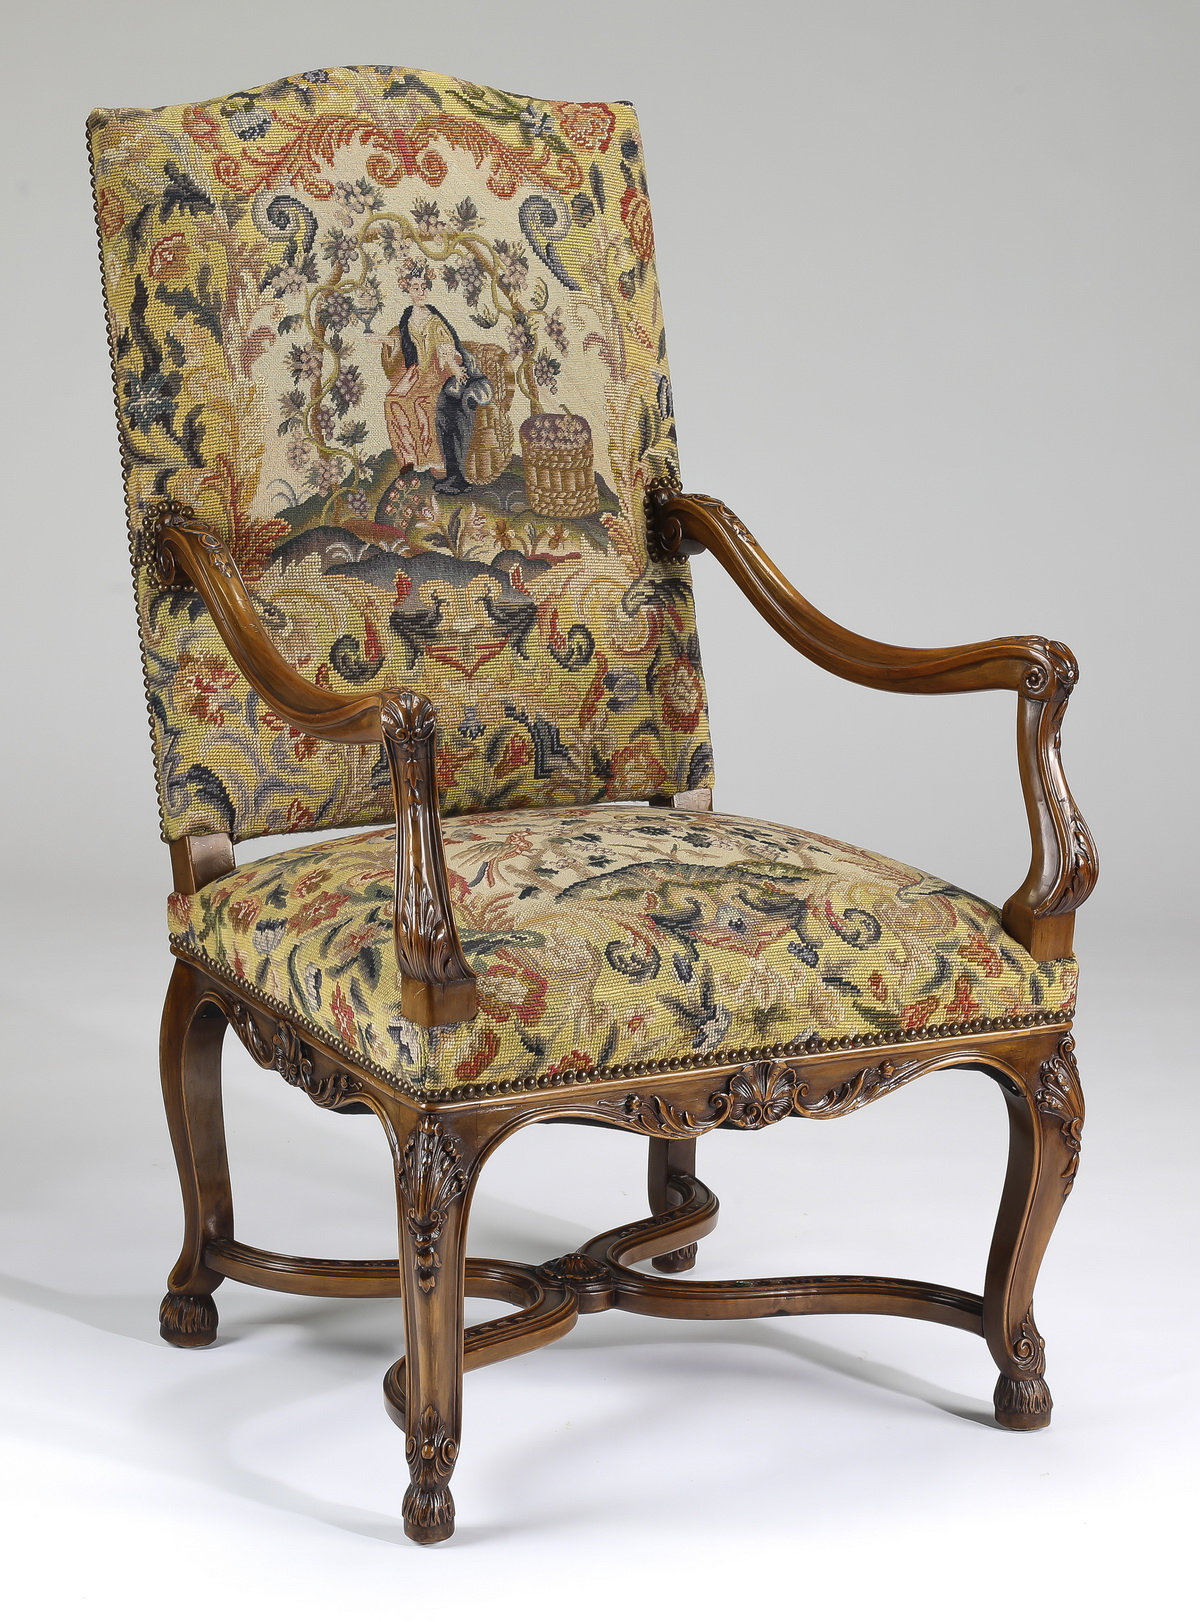 Lot 19th C French Rococo Revival Fauteuil In Needlepoint